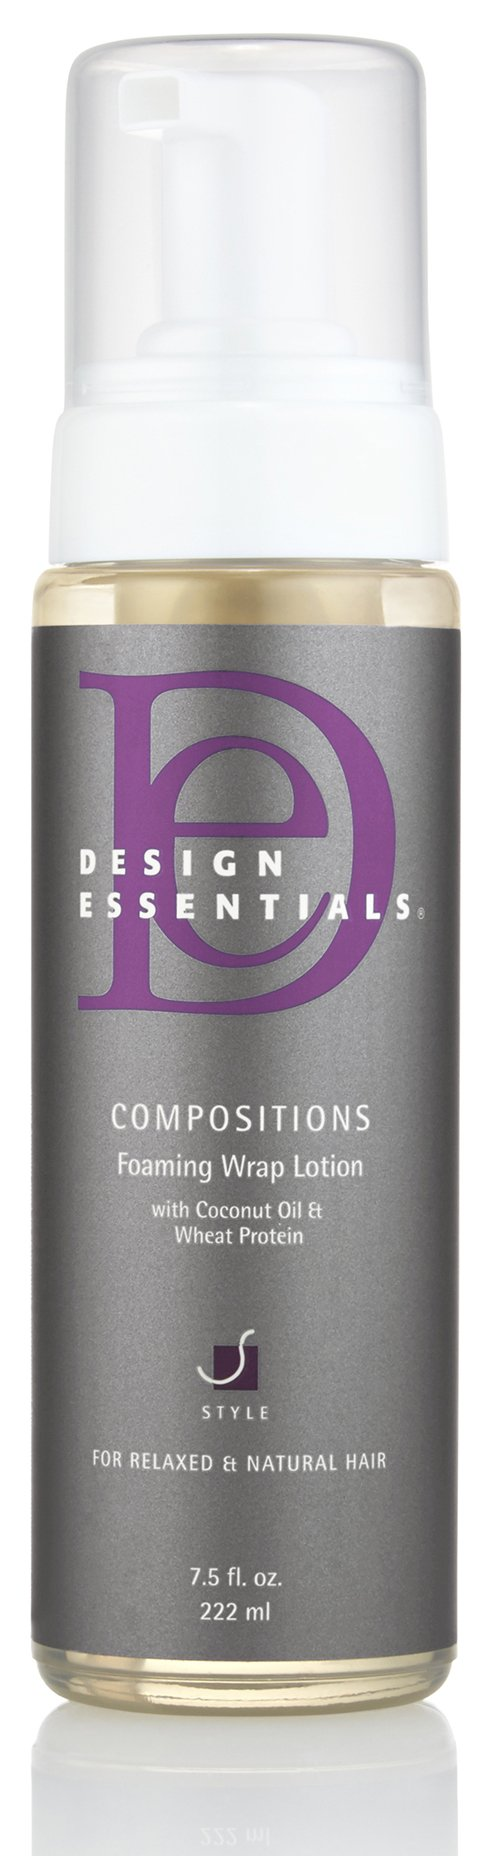 Design Essentials Compositions Non-Flaking Foaming Wrap Lotion for Smoothing, Molding, Styling Relaxed and Natural Hair with Coconut Oil & Wheat Protein for Luminous Shine-7.5oz by Design Essentials